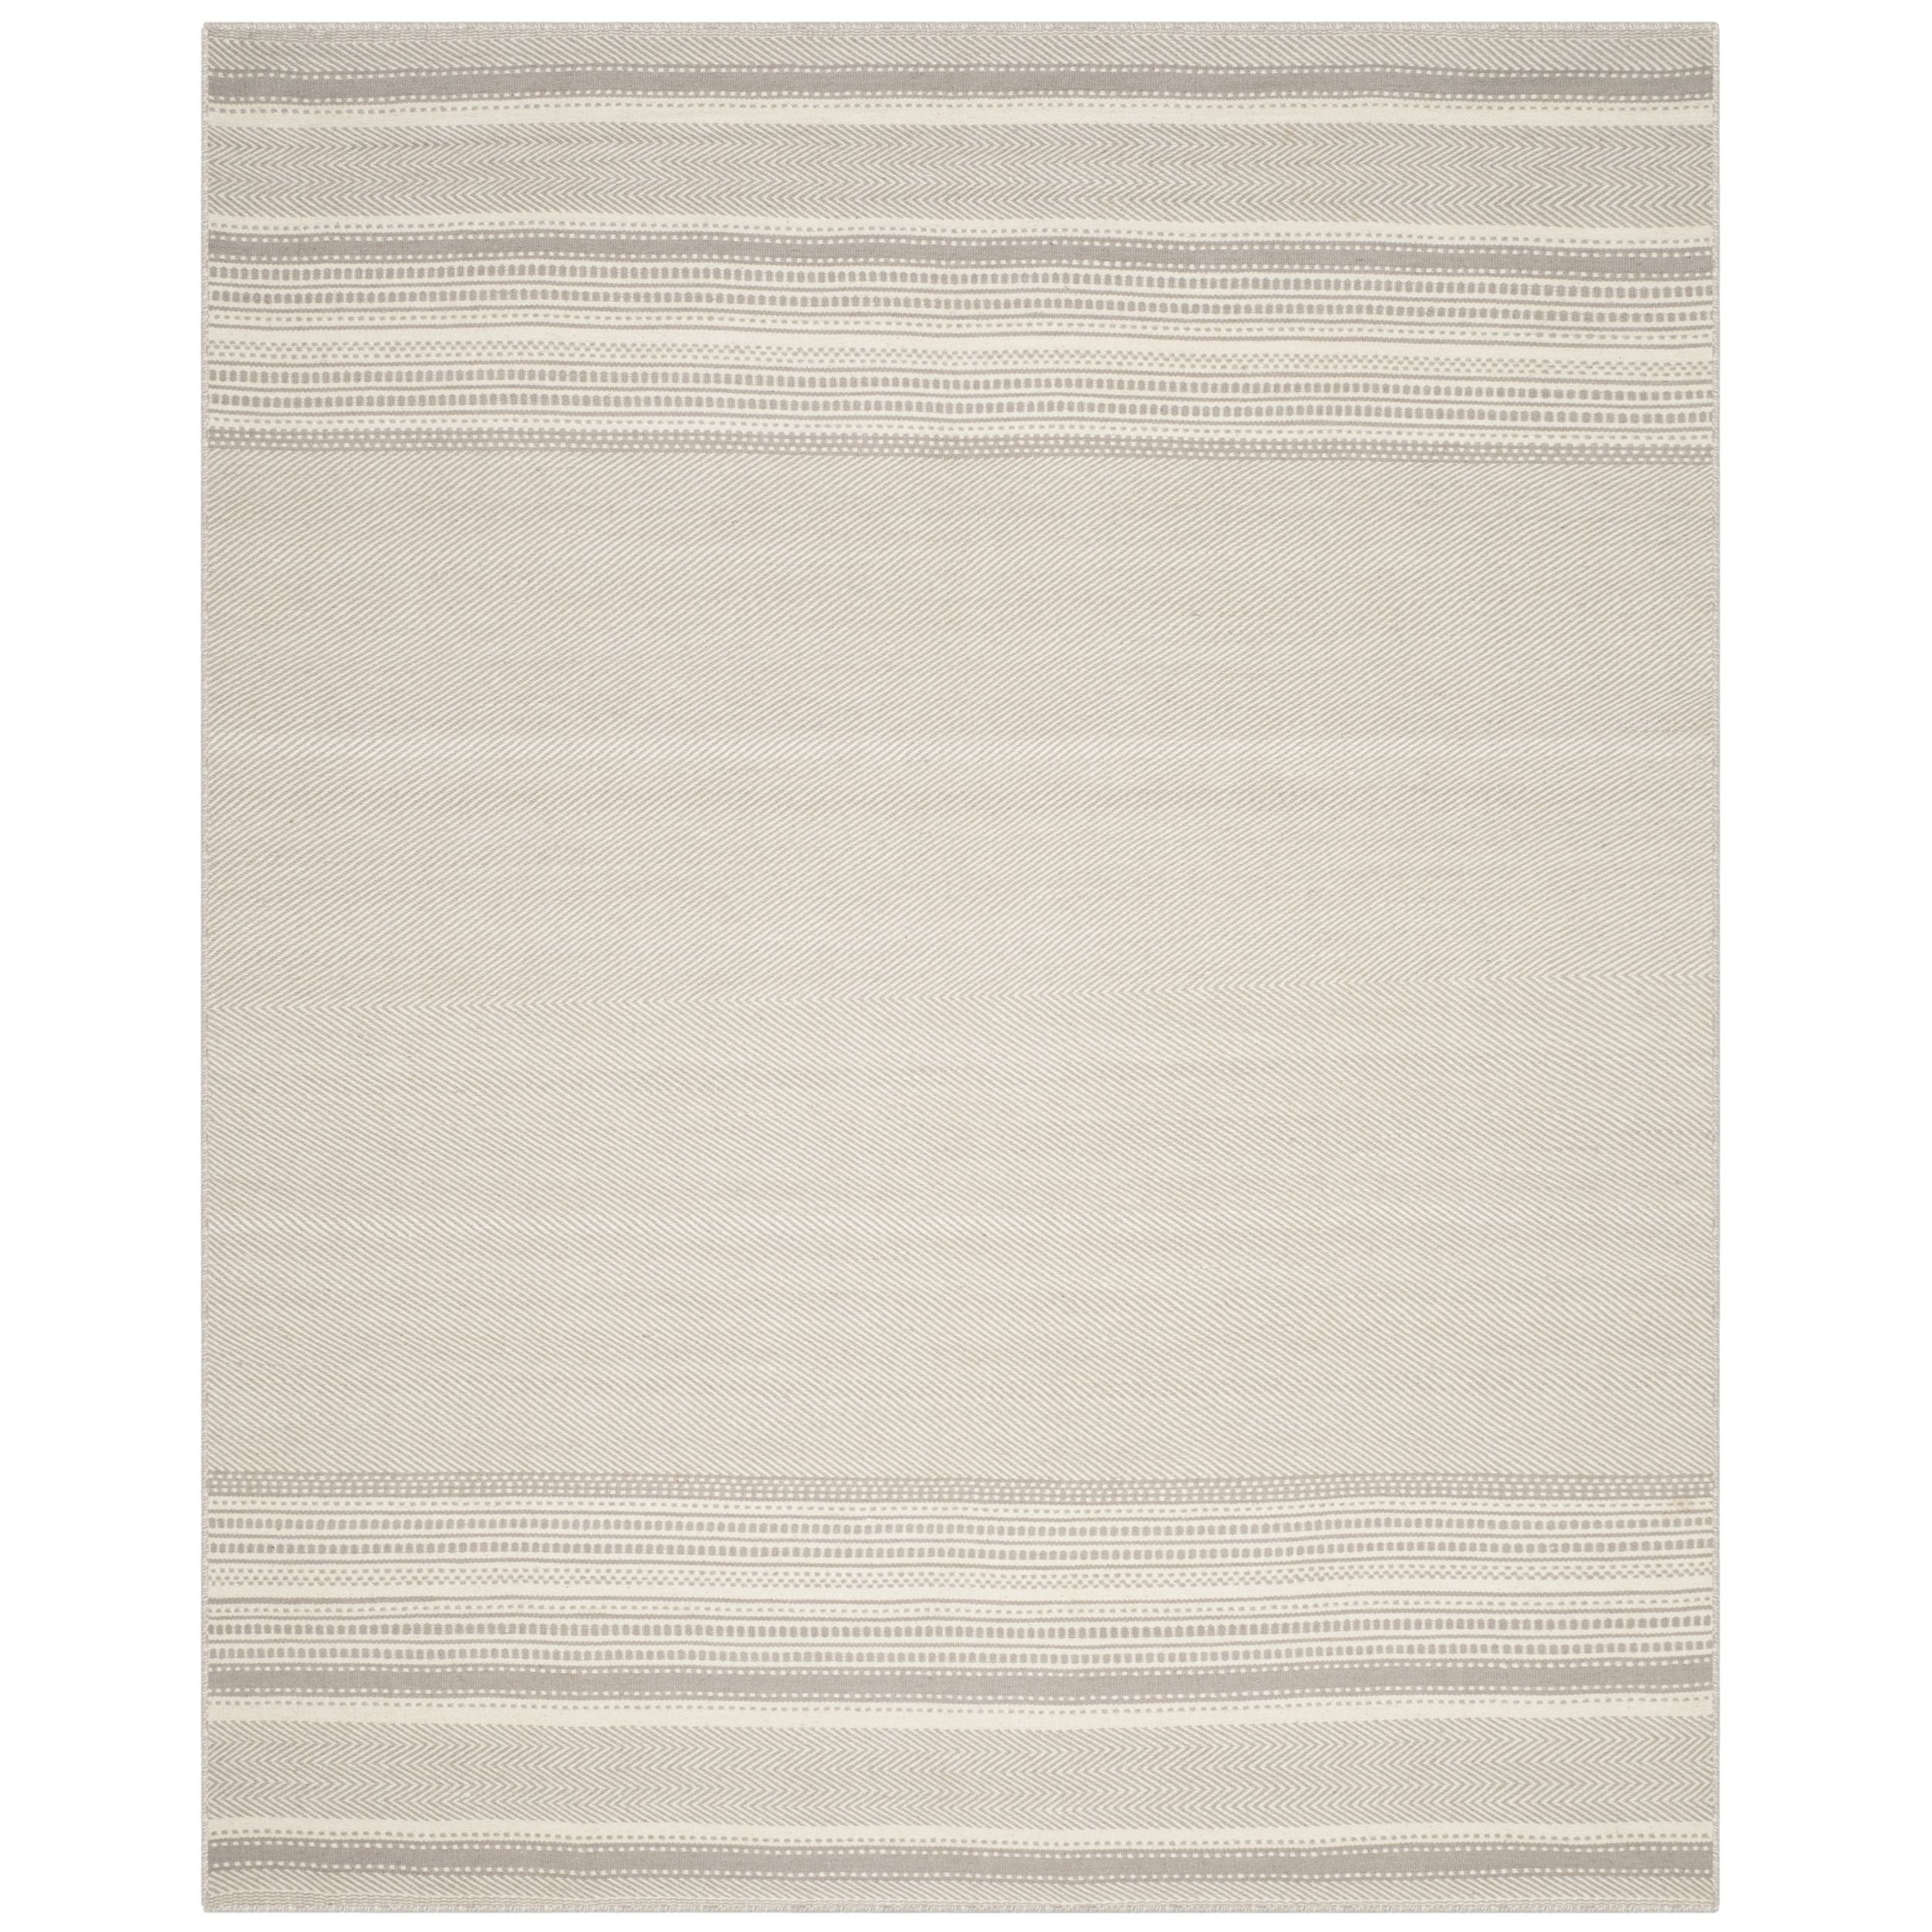 Safavieh Hand-Woven Kilim Grey/ Ivory Wool Rug (10' x 14') | Overstock.com Shopping - The Best Deals on 7x9 - 10x14 Rugs